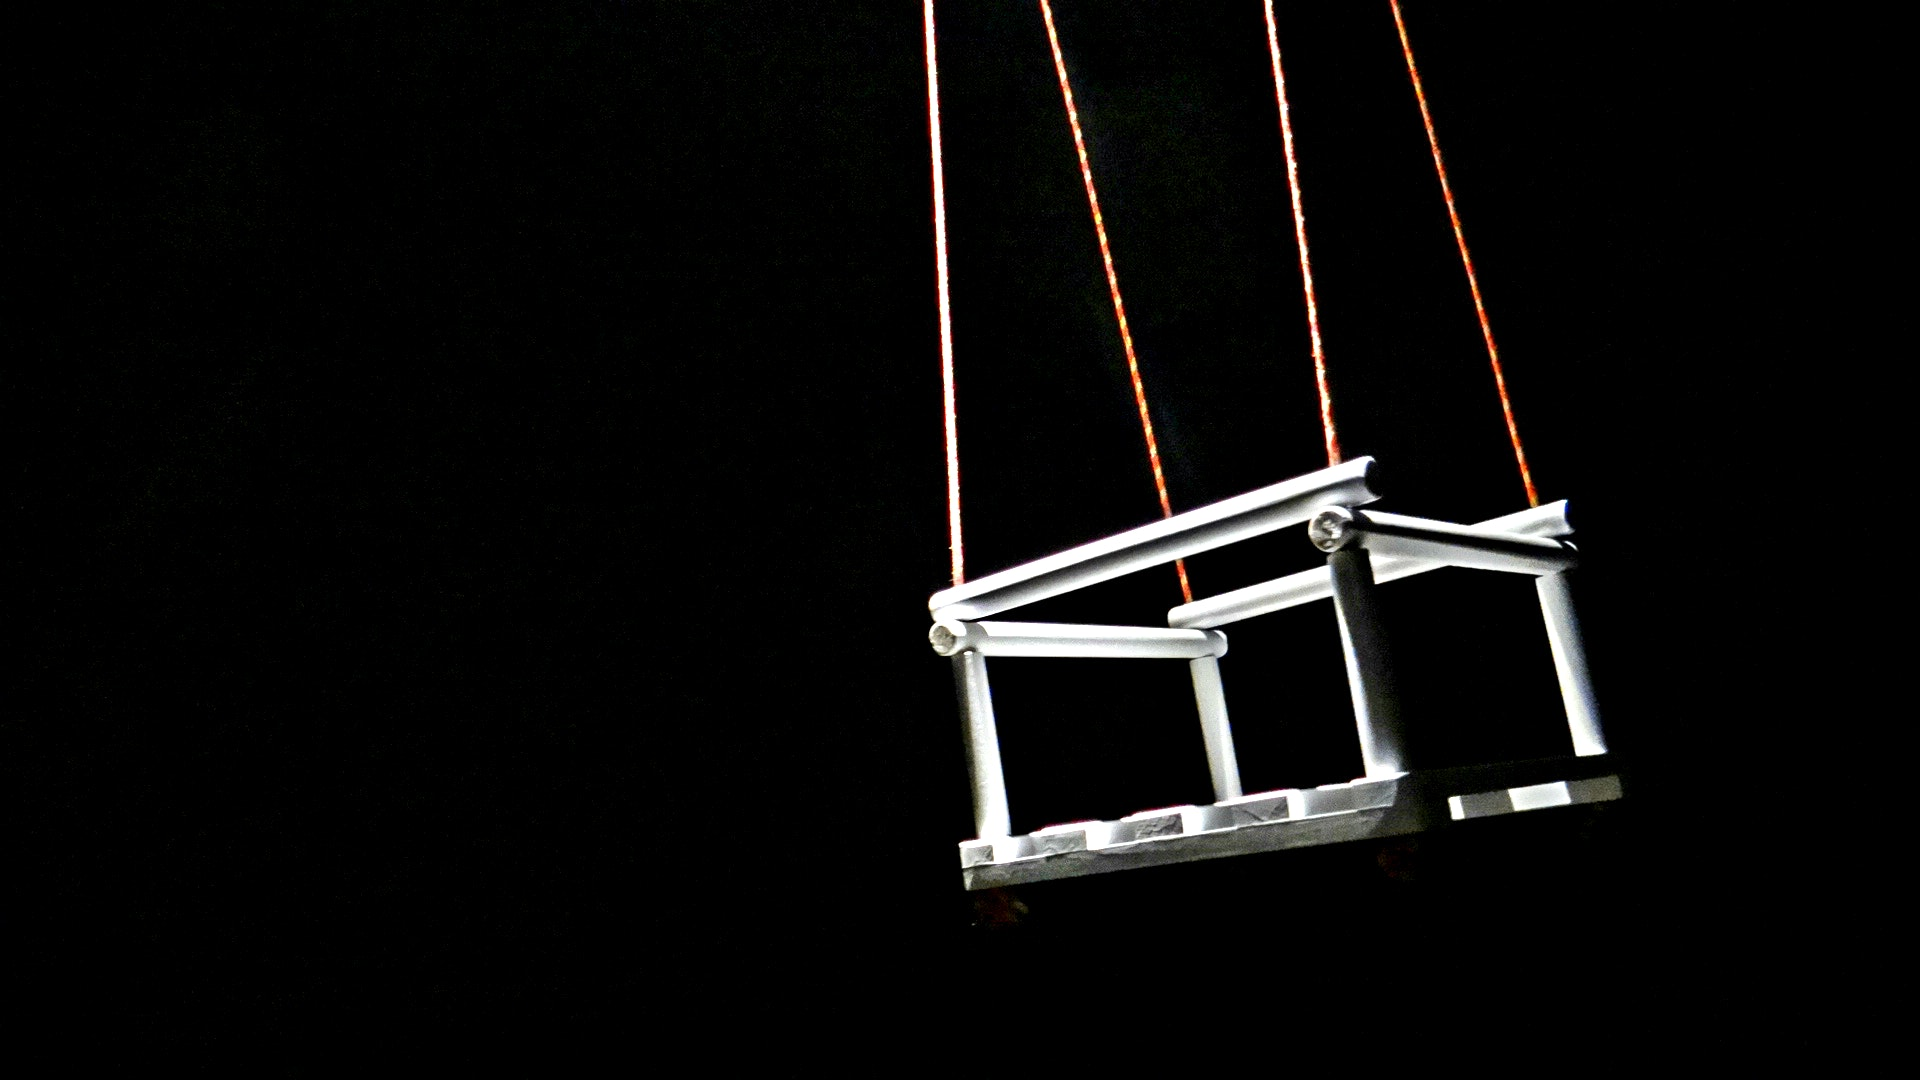 Free Stock Photo Of A White Swing Black Background